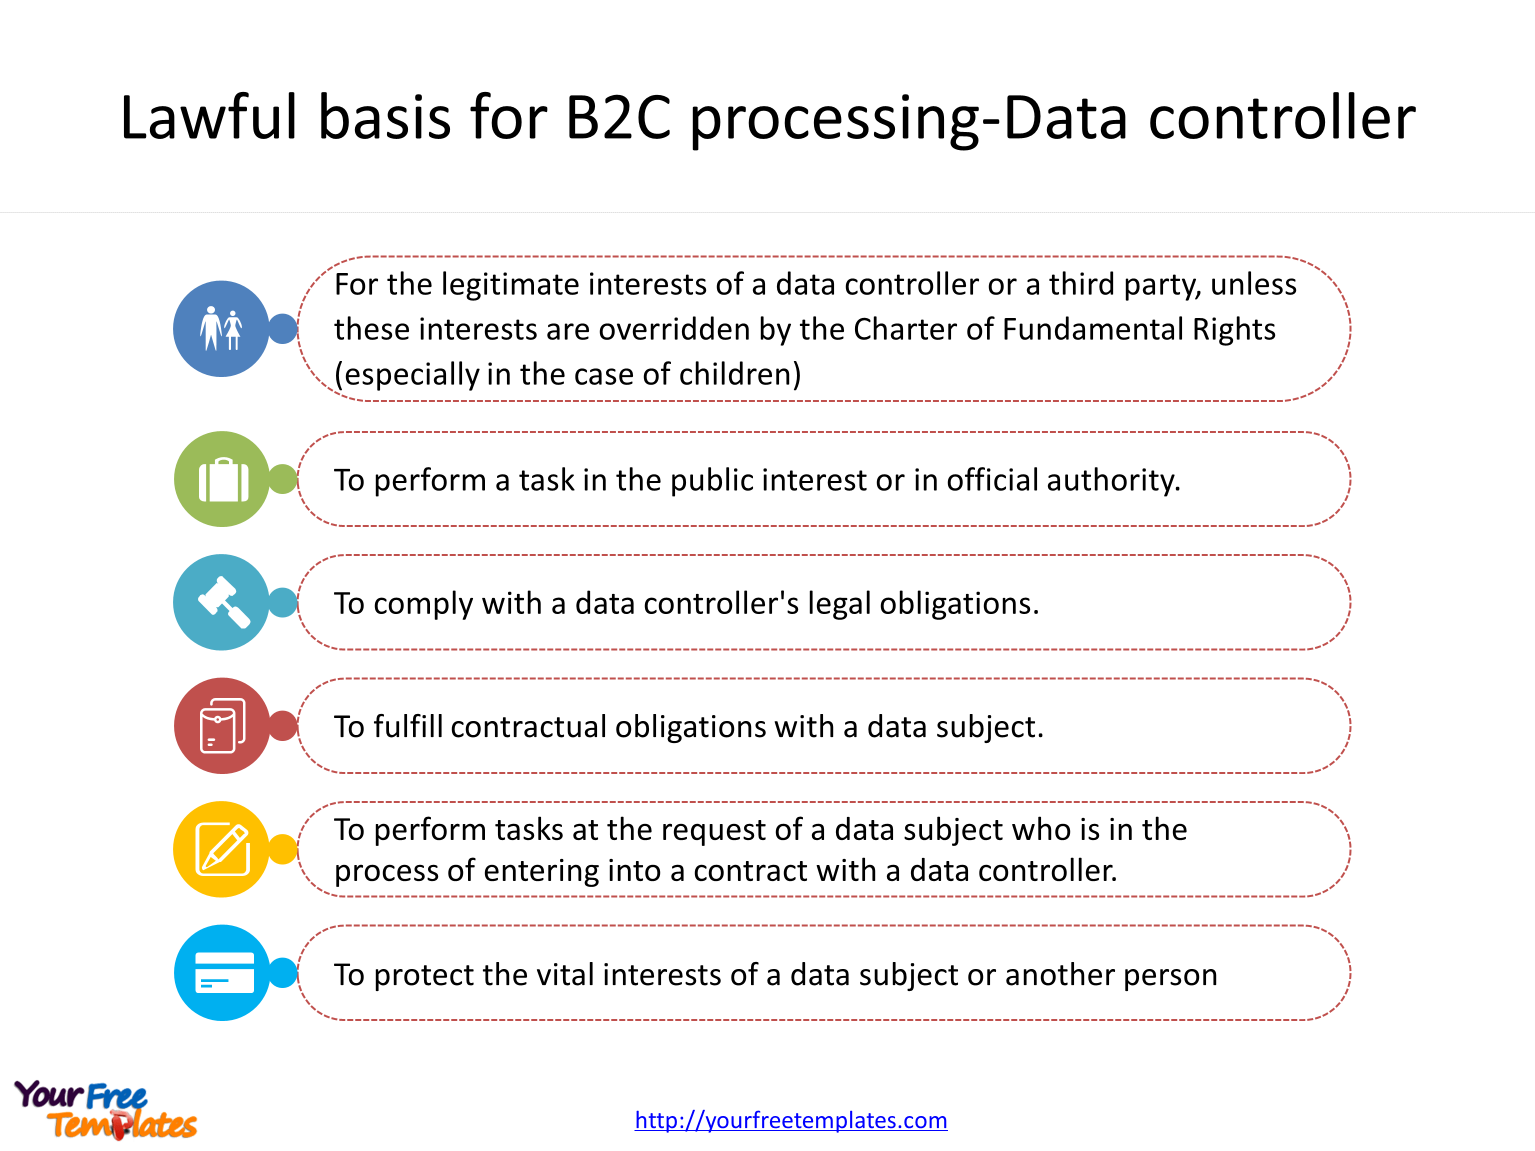 General Data Protection Regulation with Lawful basis for B2C processing in the GDPR compliance PowerPoint templates